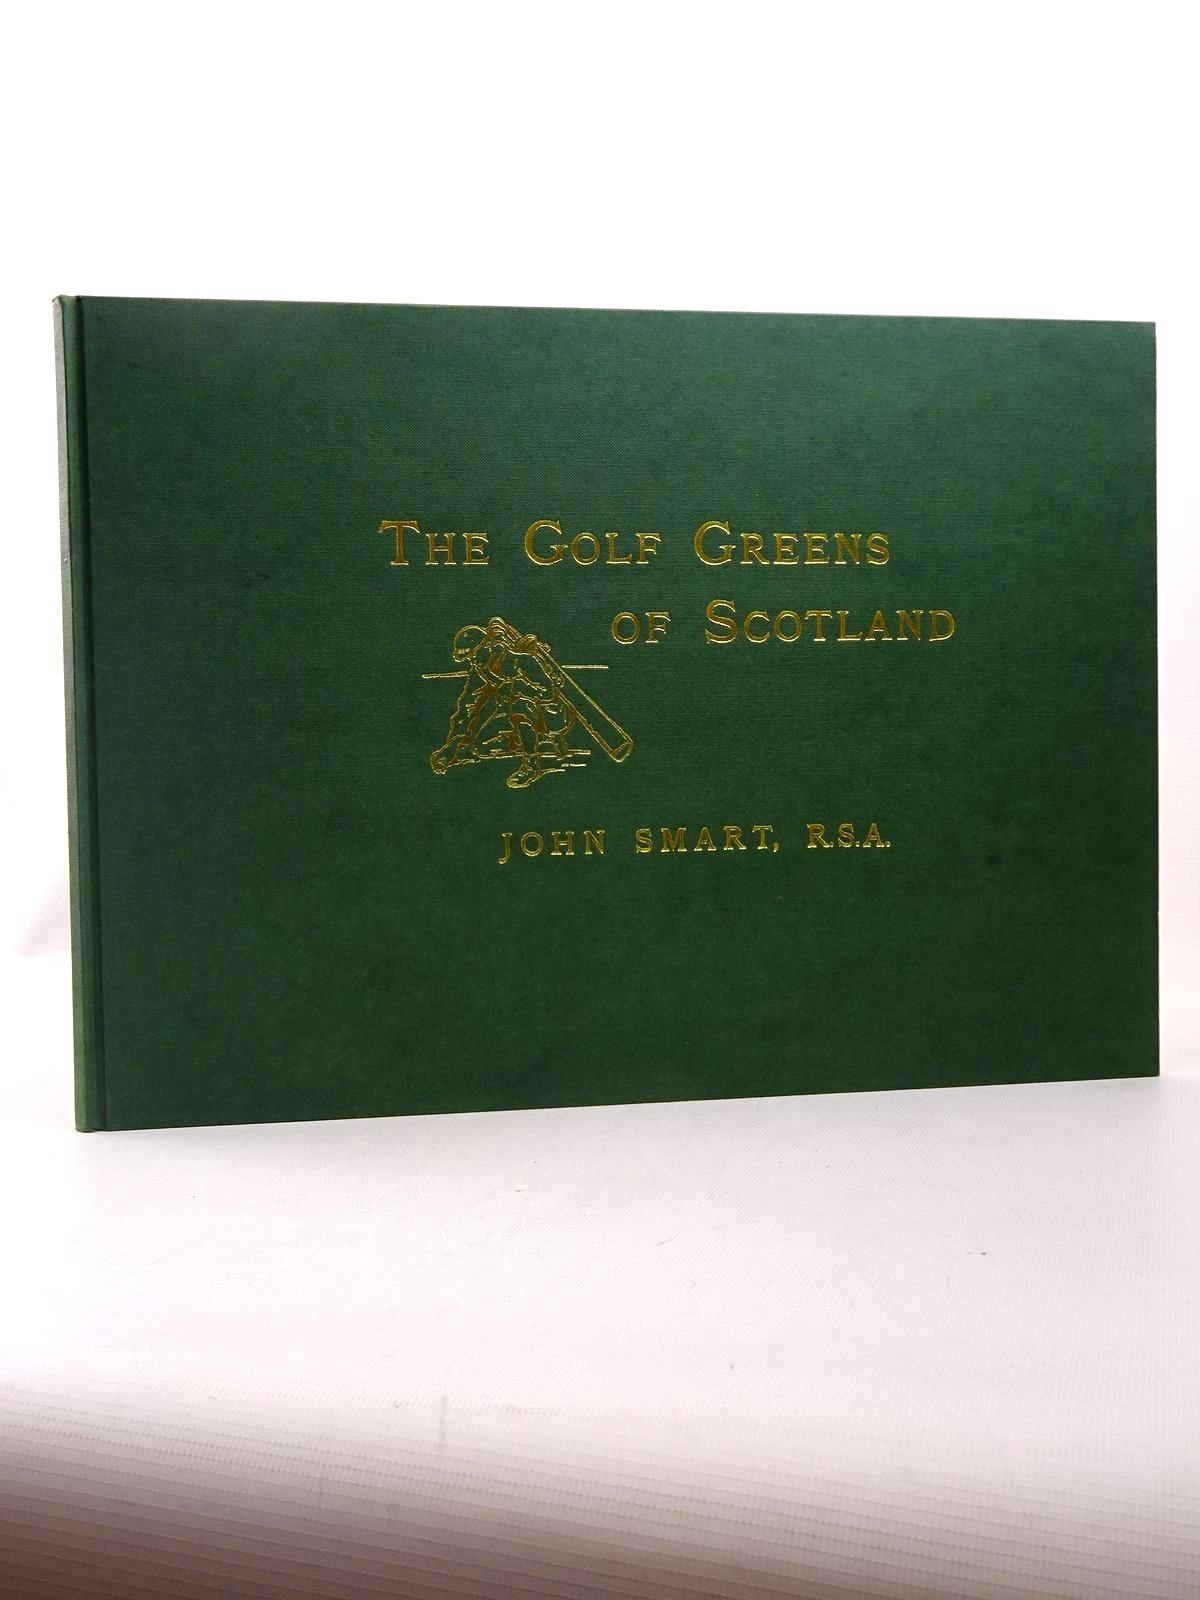 Photo of A ROUND OF THE LINKS: VIEWS OF THE GOLF GREENS OF SCOTLAND- Stock Number: 1817240